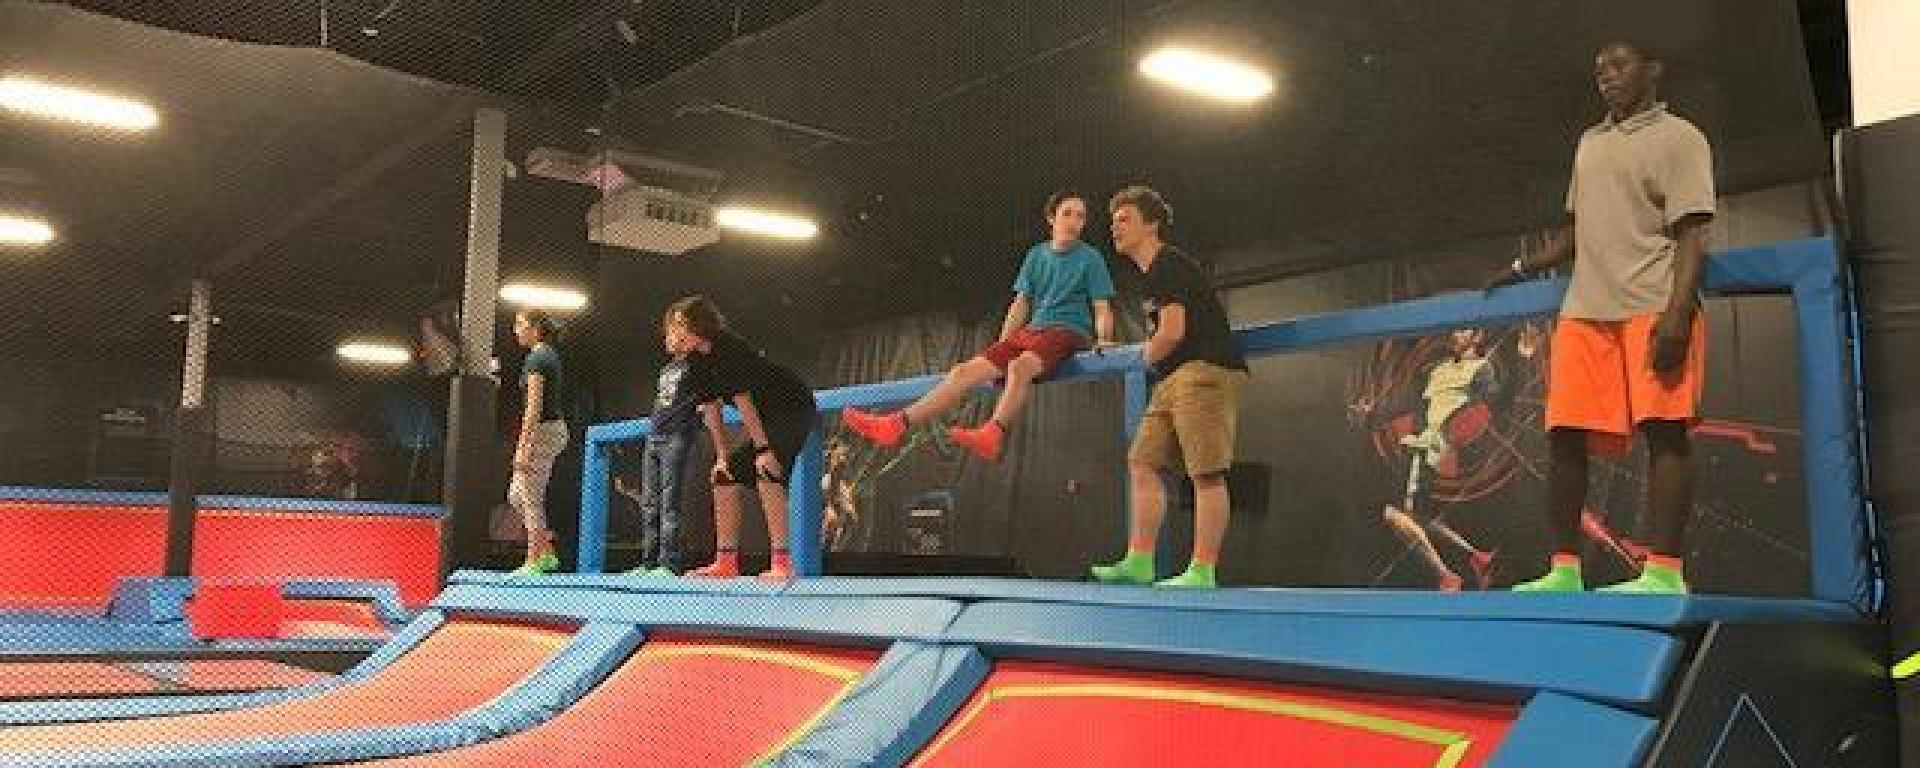 Teen event taking place at RUSH, an indoor trampoline facility in Jensen Beach.